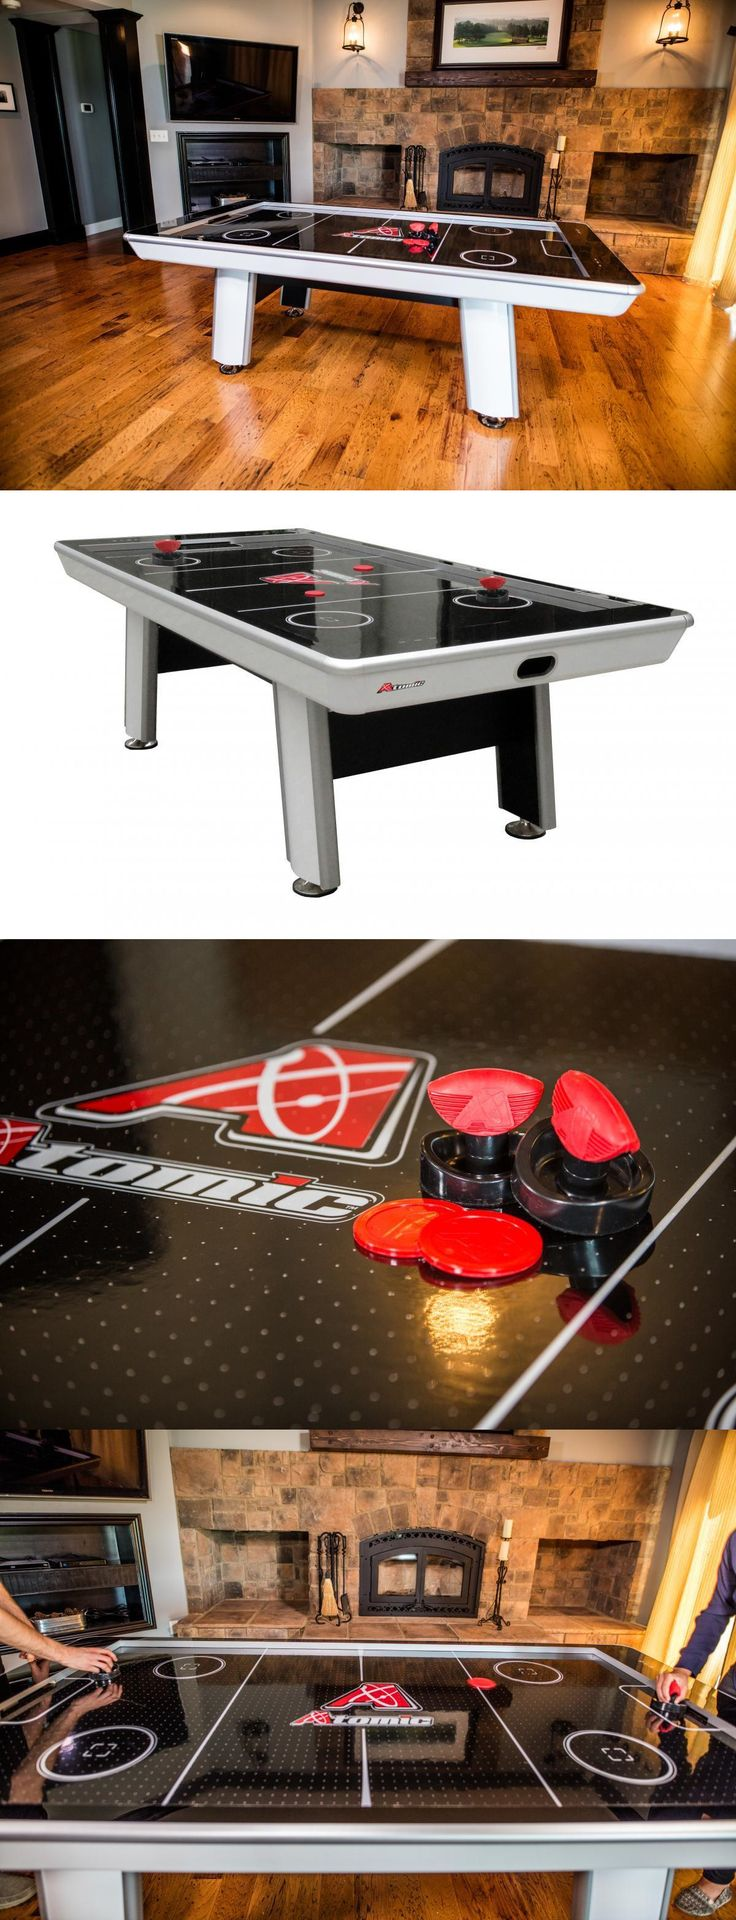 Air Hockey 36275: Atomic Avenger 8 Air Hockey Game Table - New -> BUY IT NOW ONLY: $1099.99 on eBay!